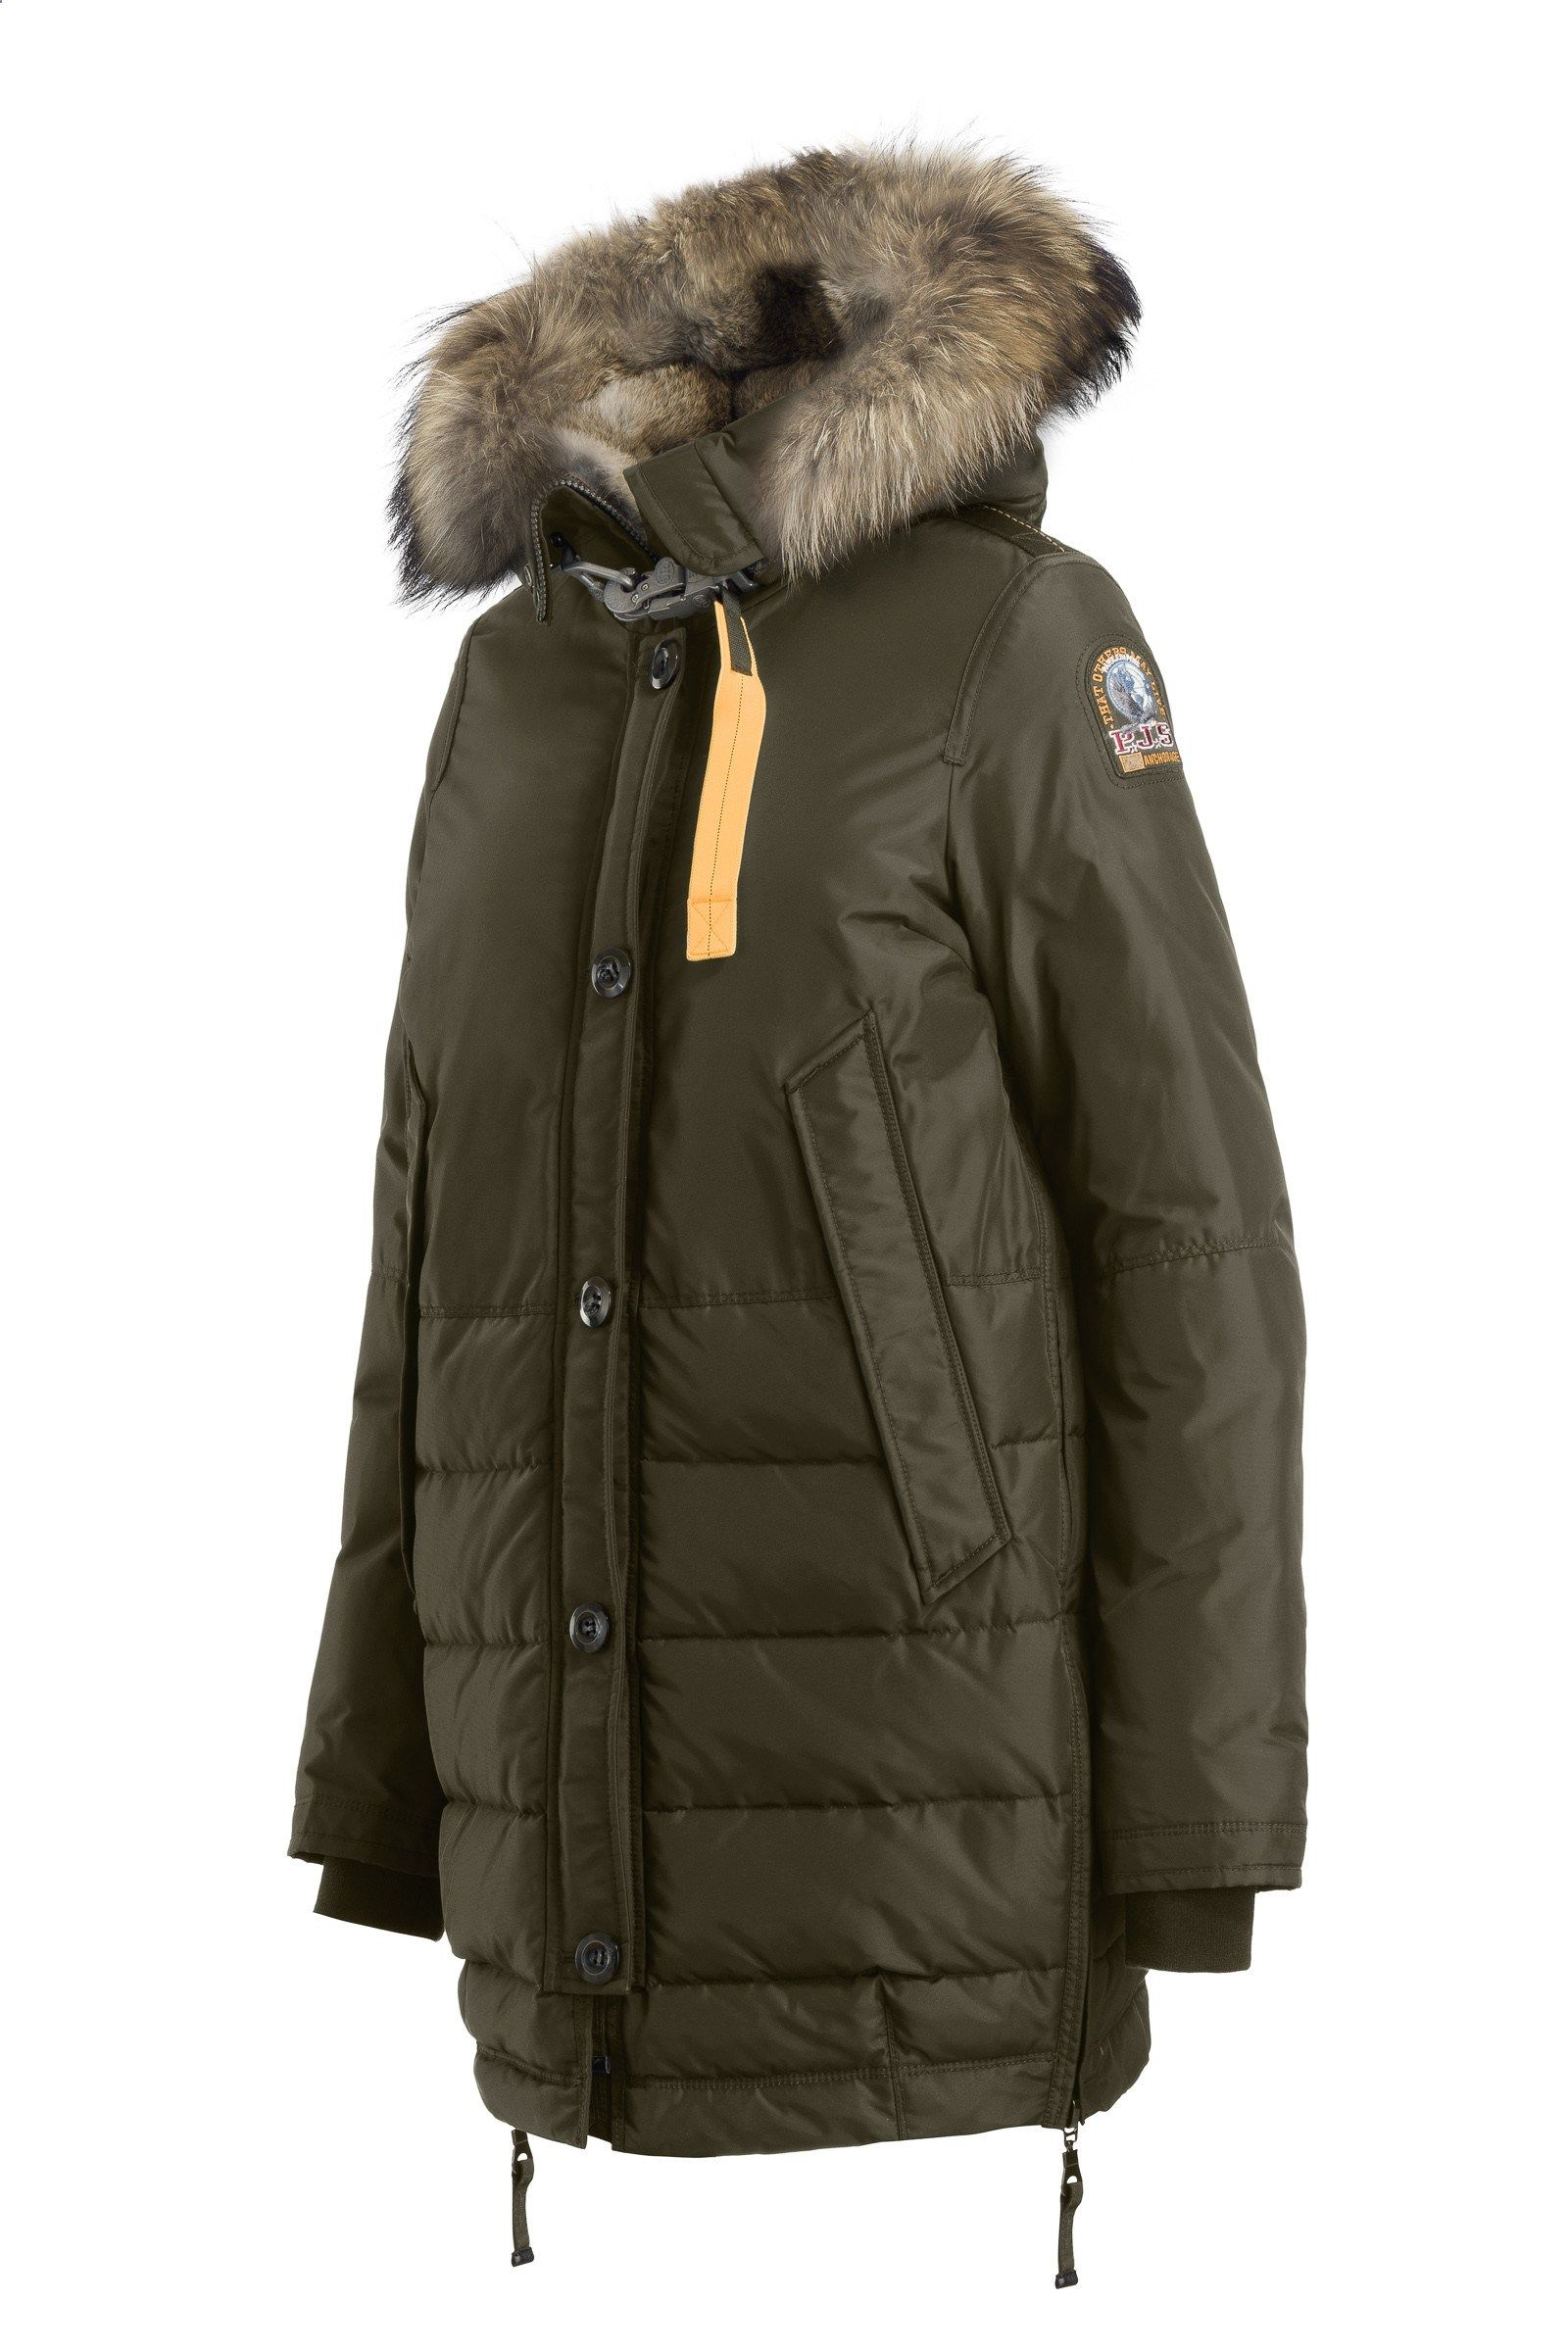 LONG FORBES - Outerwear - WOMAN | Parajumpers